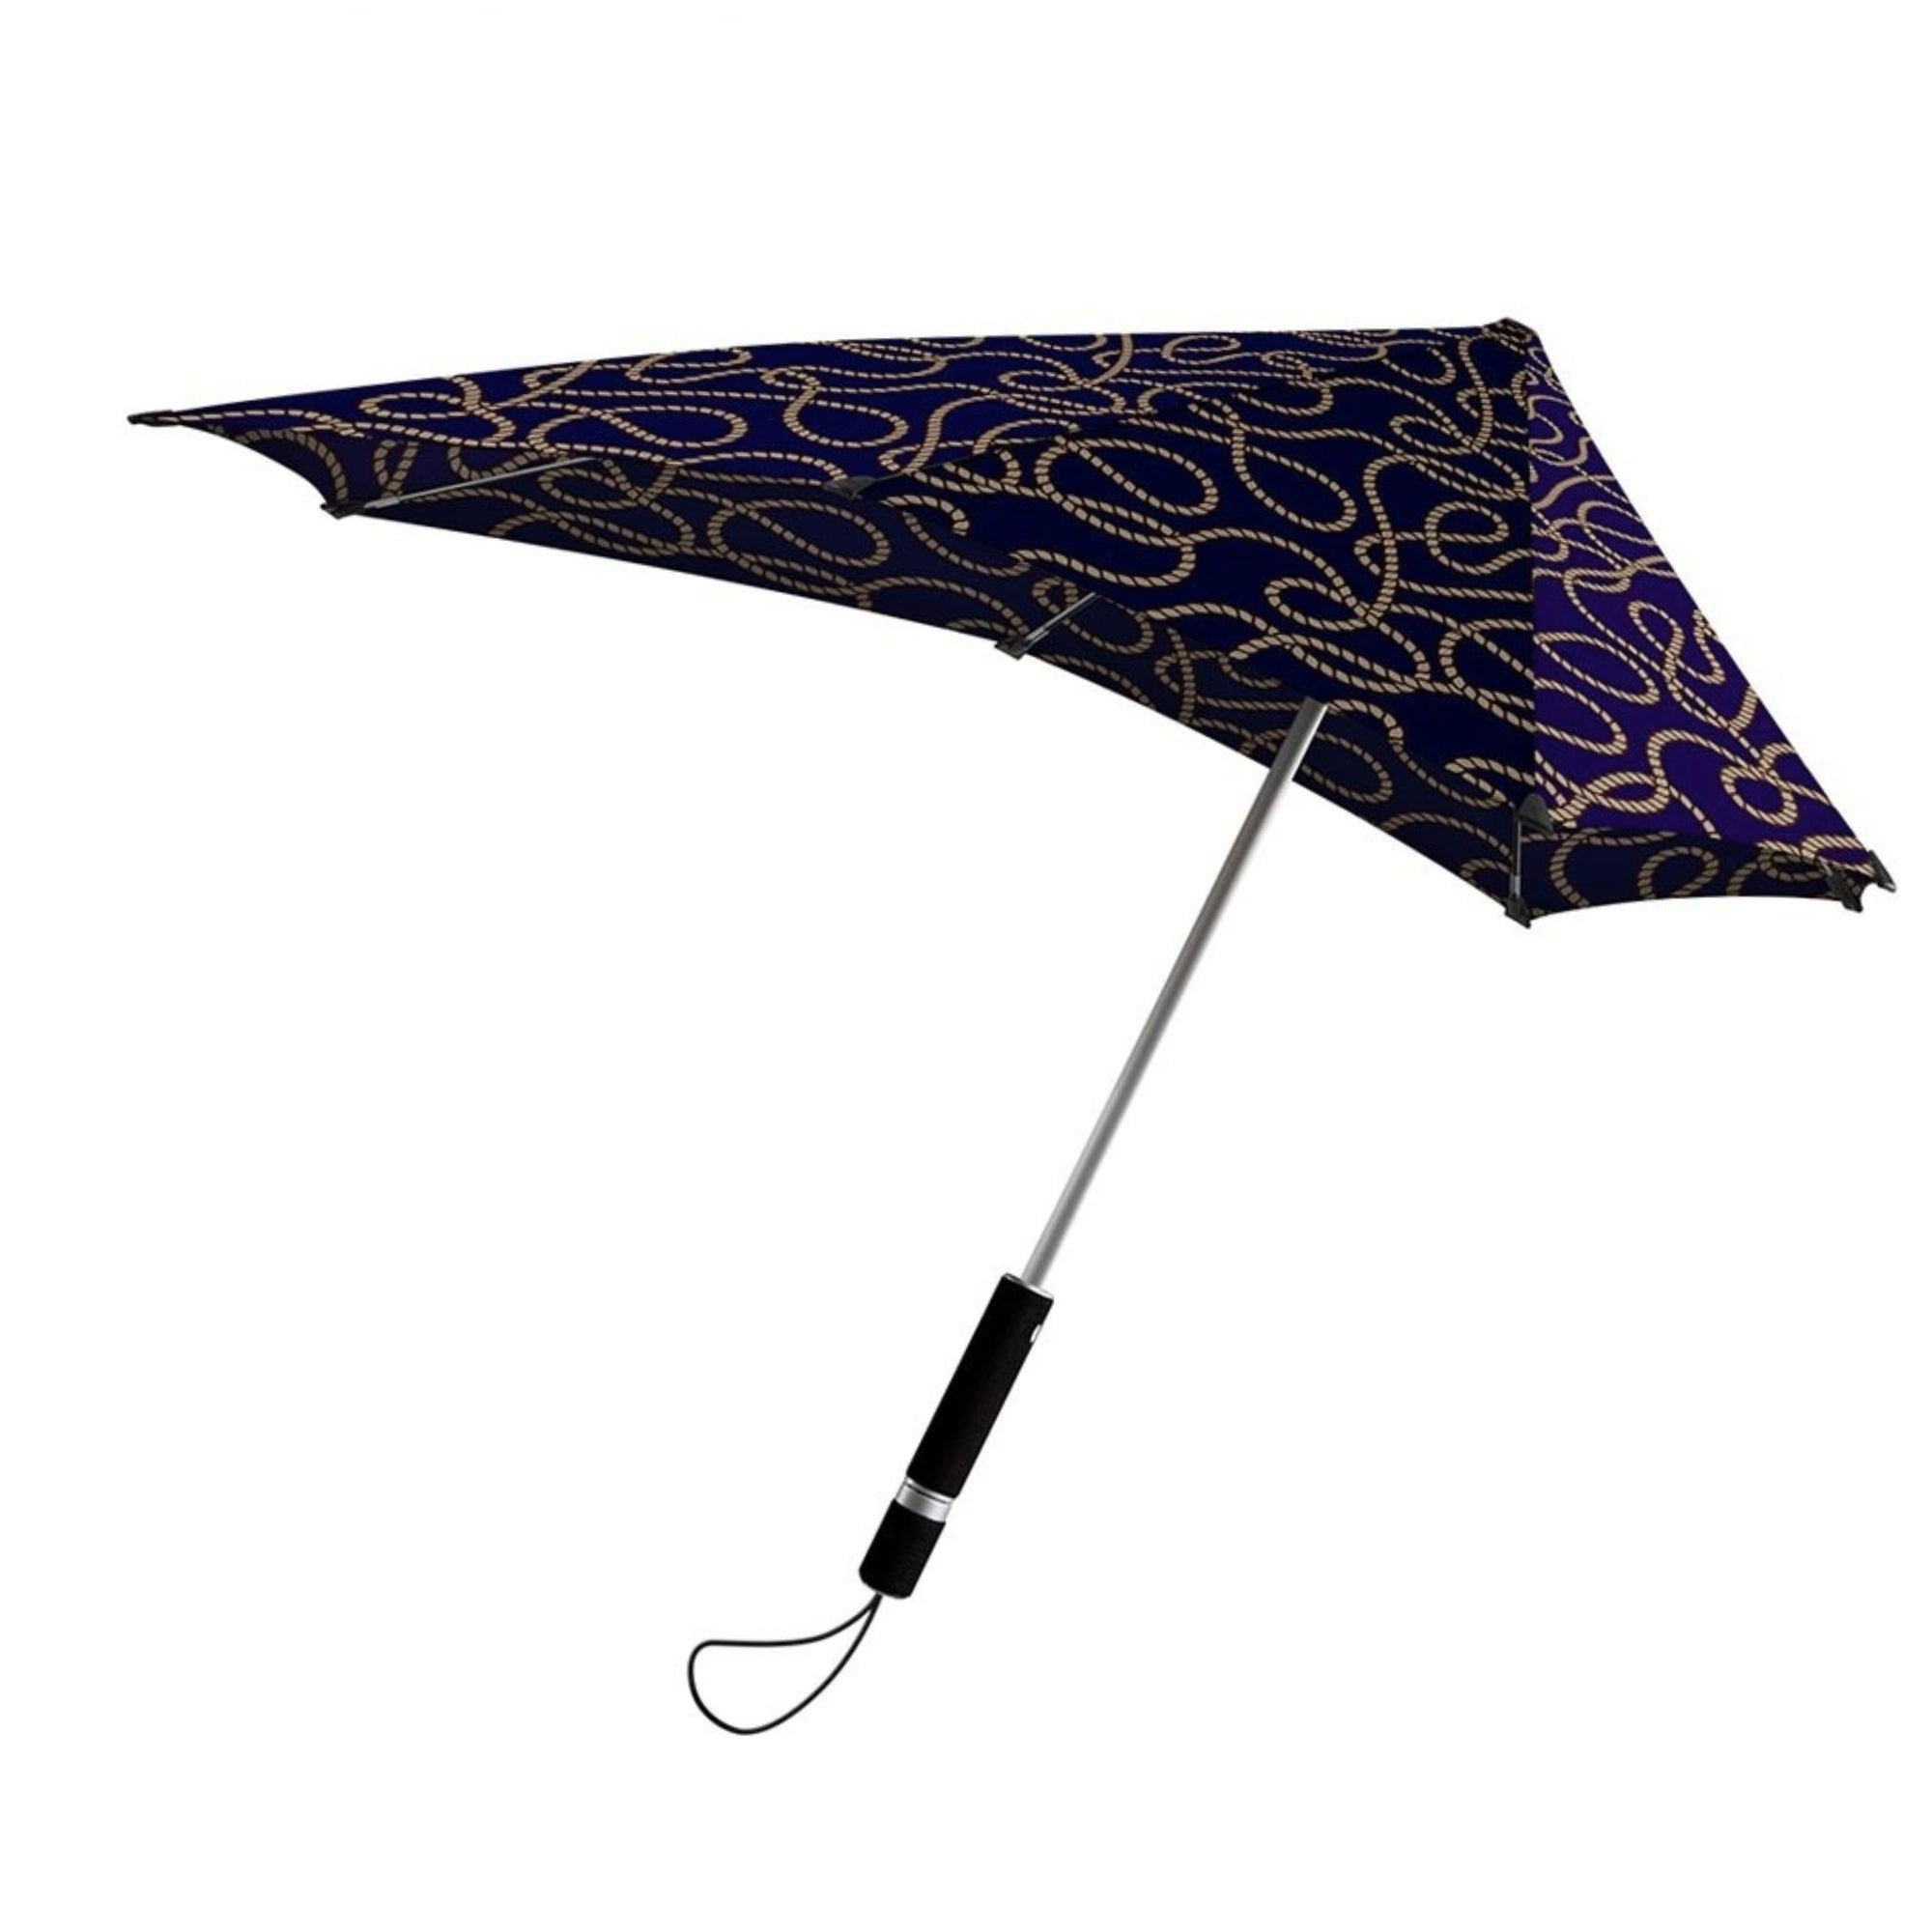 Senz° Original storm umbrella, rope works